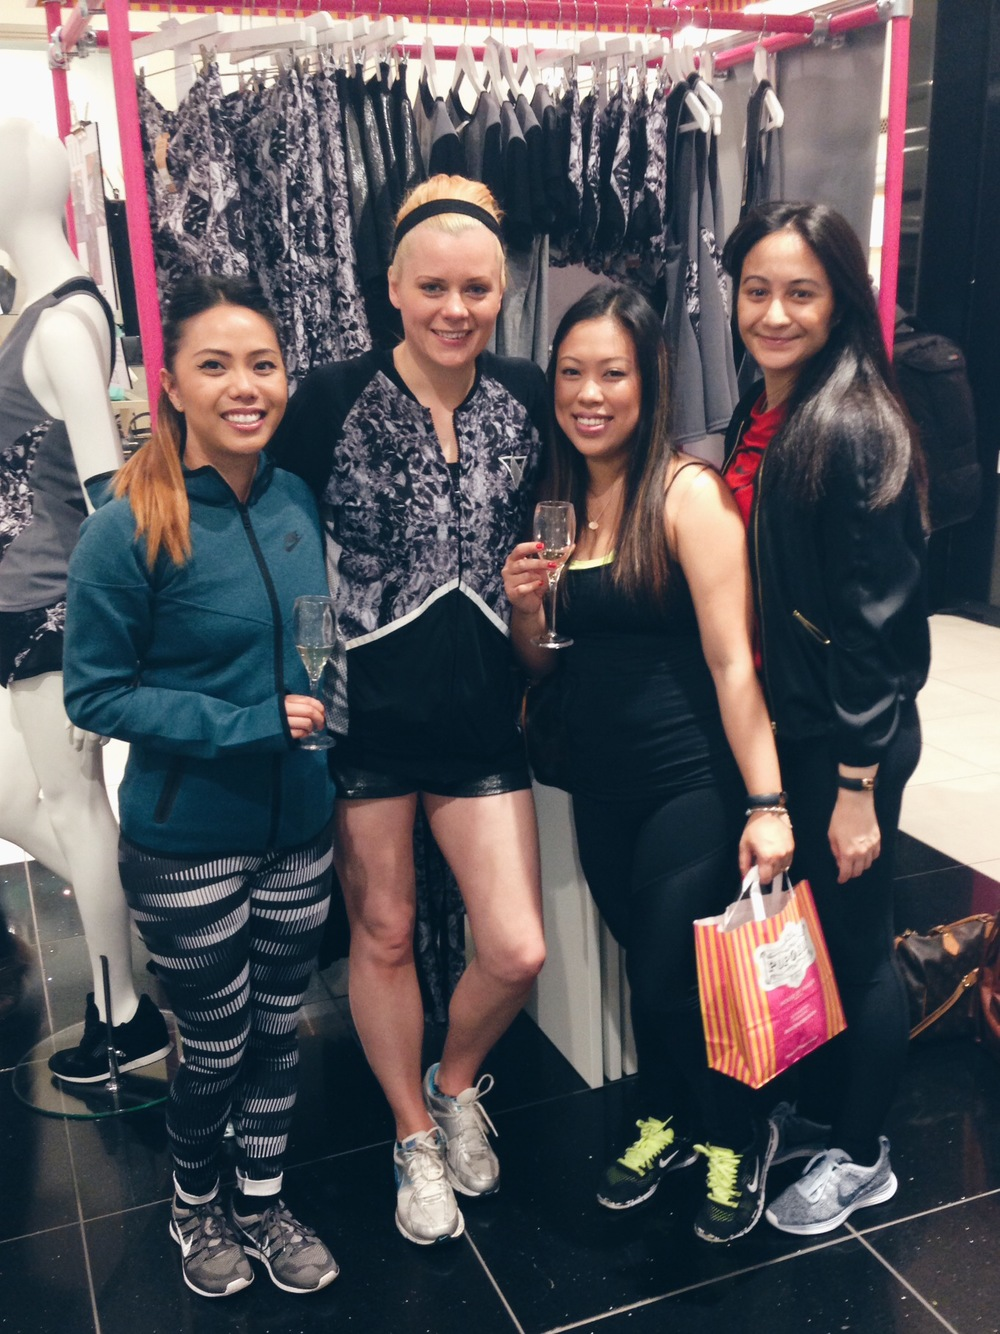 3/4 of fourfits celebrating the success of Lexie Sport with founder, Lily Rice!